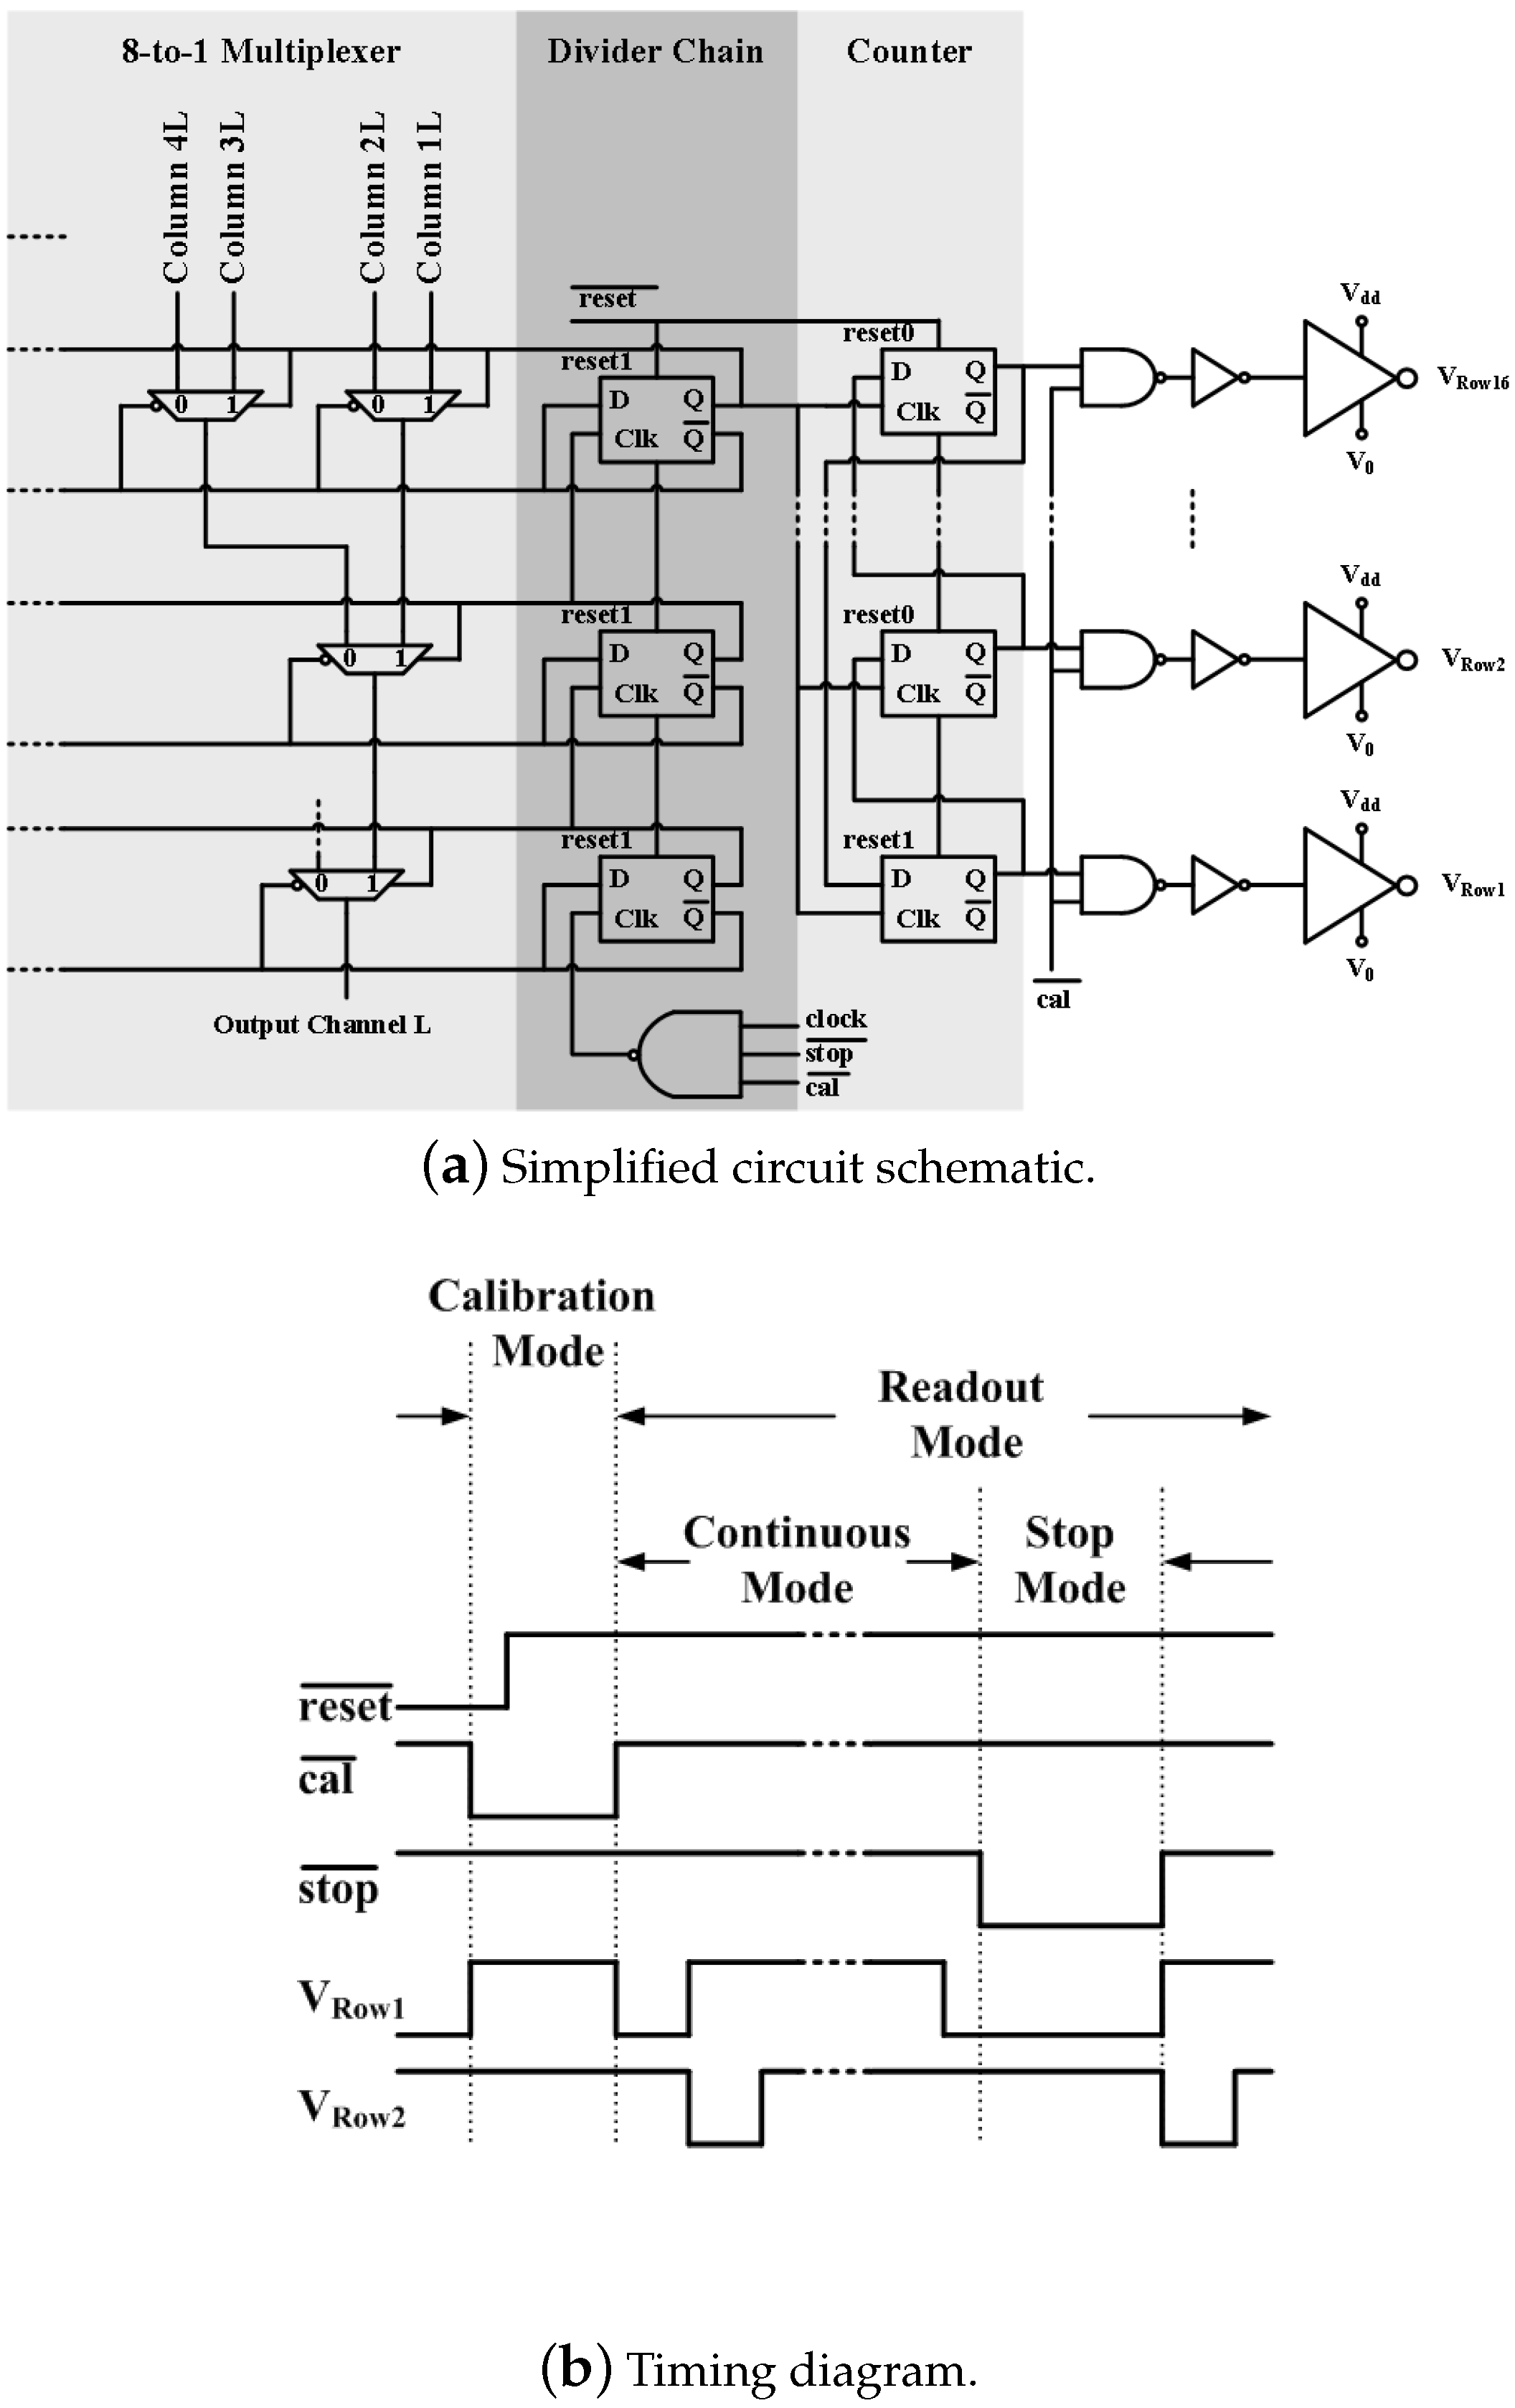 Sensors | Free Full-Text | Active C4 Electrodes for Local ... on lighting diagrams, engine diagrams, electrical diagrams, gmc fuse box diagrams, electronic circuit diagrams, transformer diagrams, series and parallel circuits diagrams, switch diagrams, hvac diagrams, battery diagrams, honda motorcycle repair diagrams, pinout diagrams, troubleshooting diagrams, internet of things diagrams, sincgars radio configurations diagrams, friendship bracelet diagrams, motor diagrams, led circuit diagrams, smart car diagrams,